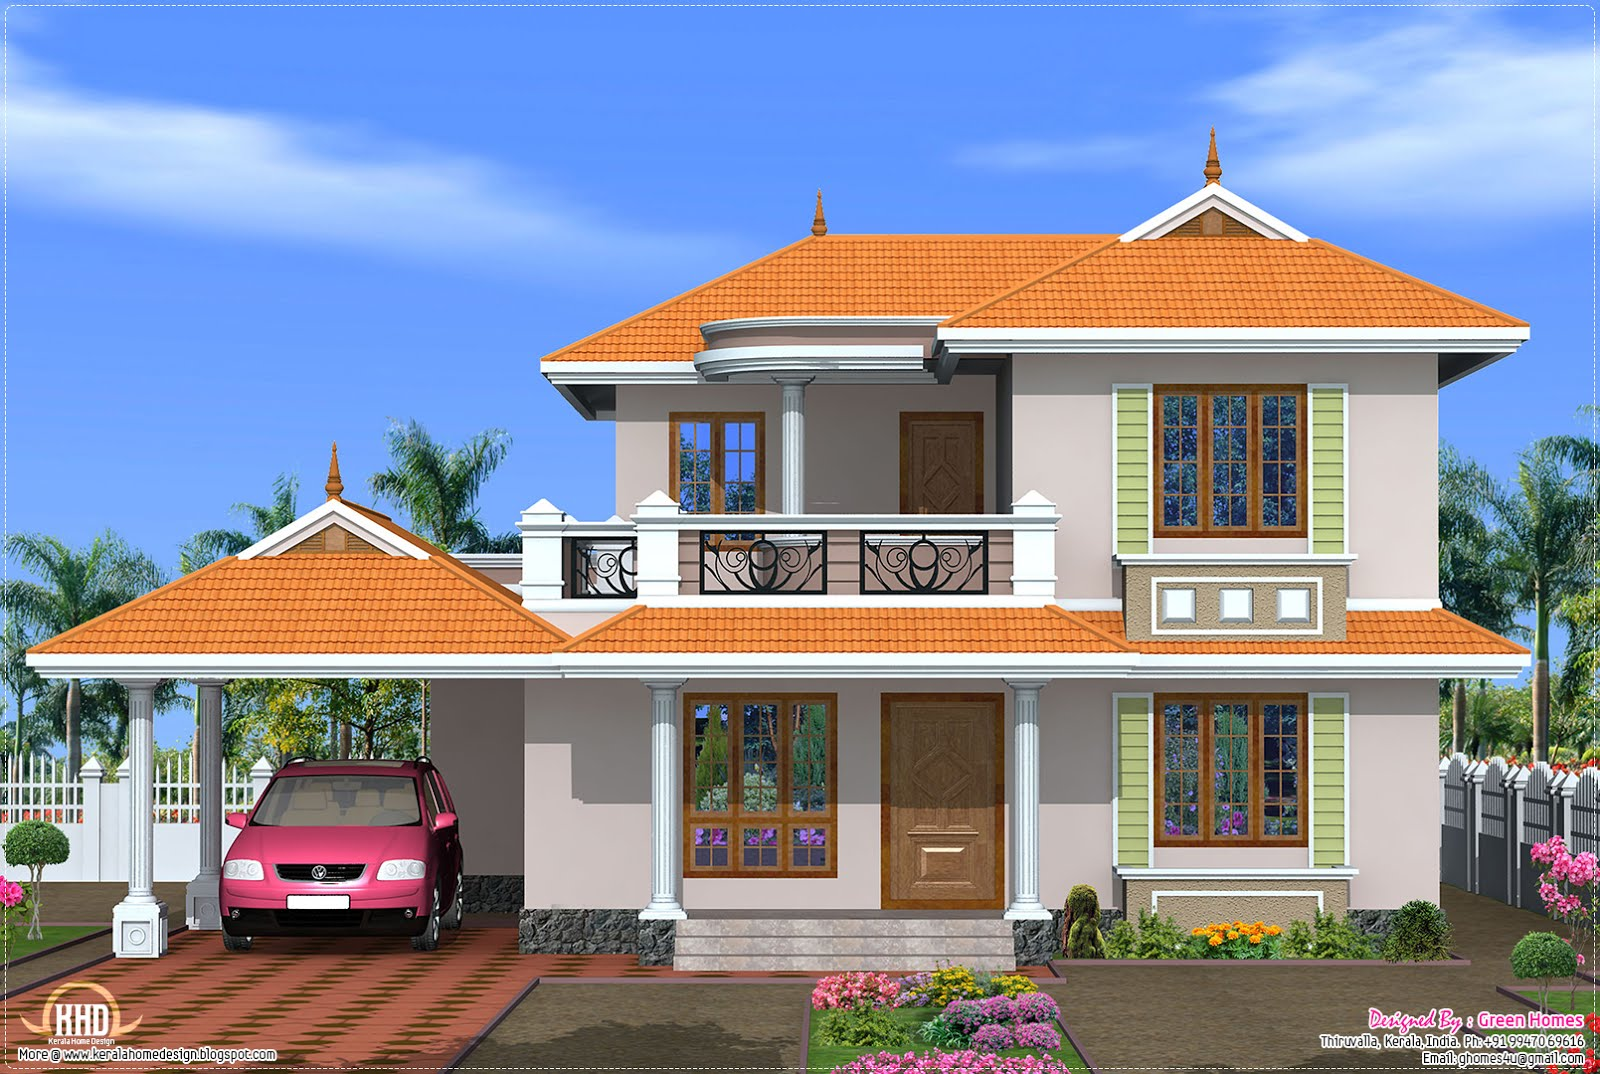 4 Bedroom Kerala model house design Kerala home design and floor